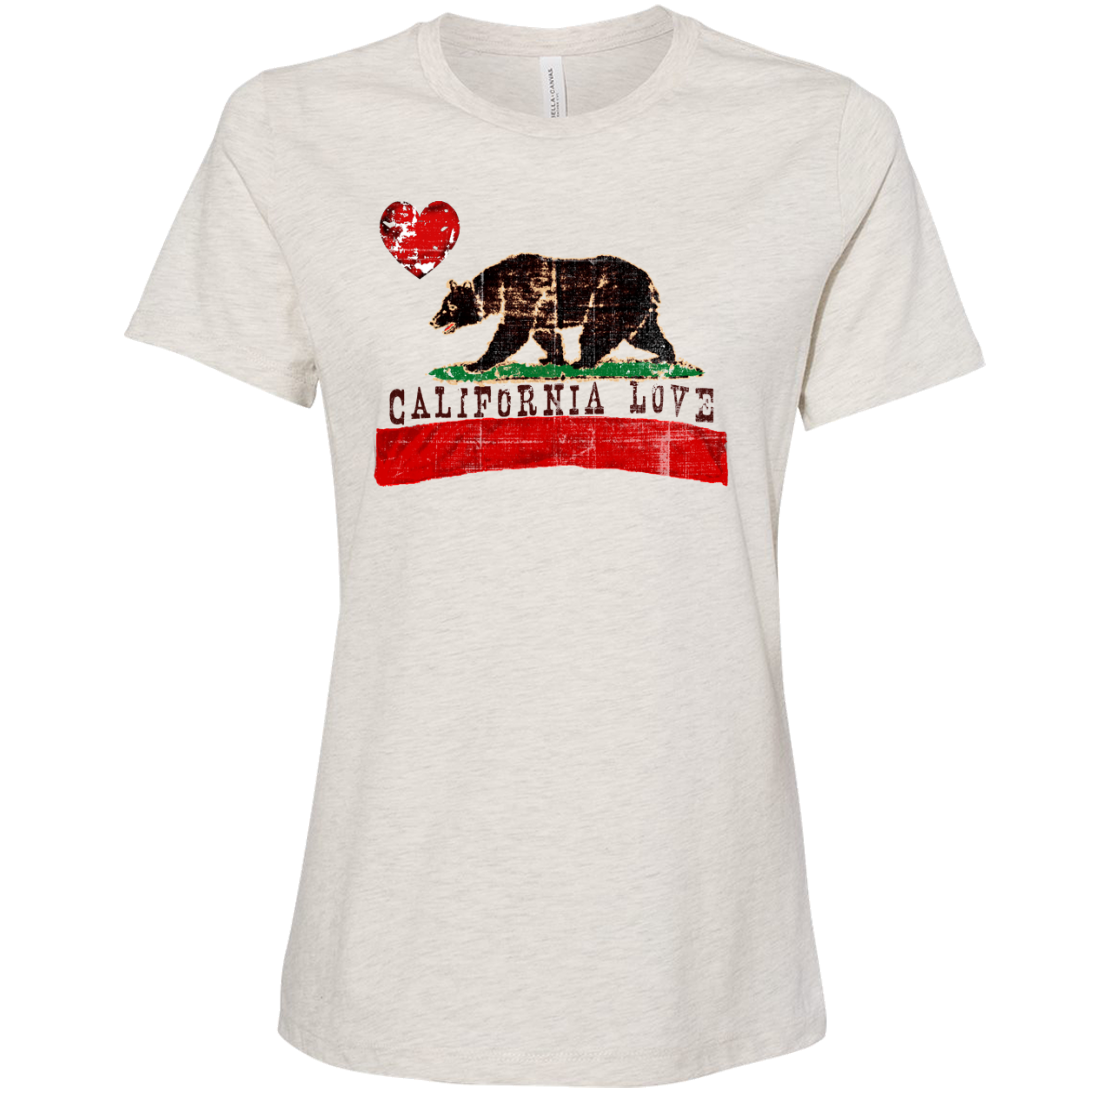 California Love Distressed Women's Relaxed Jersey Tee